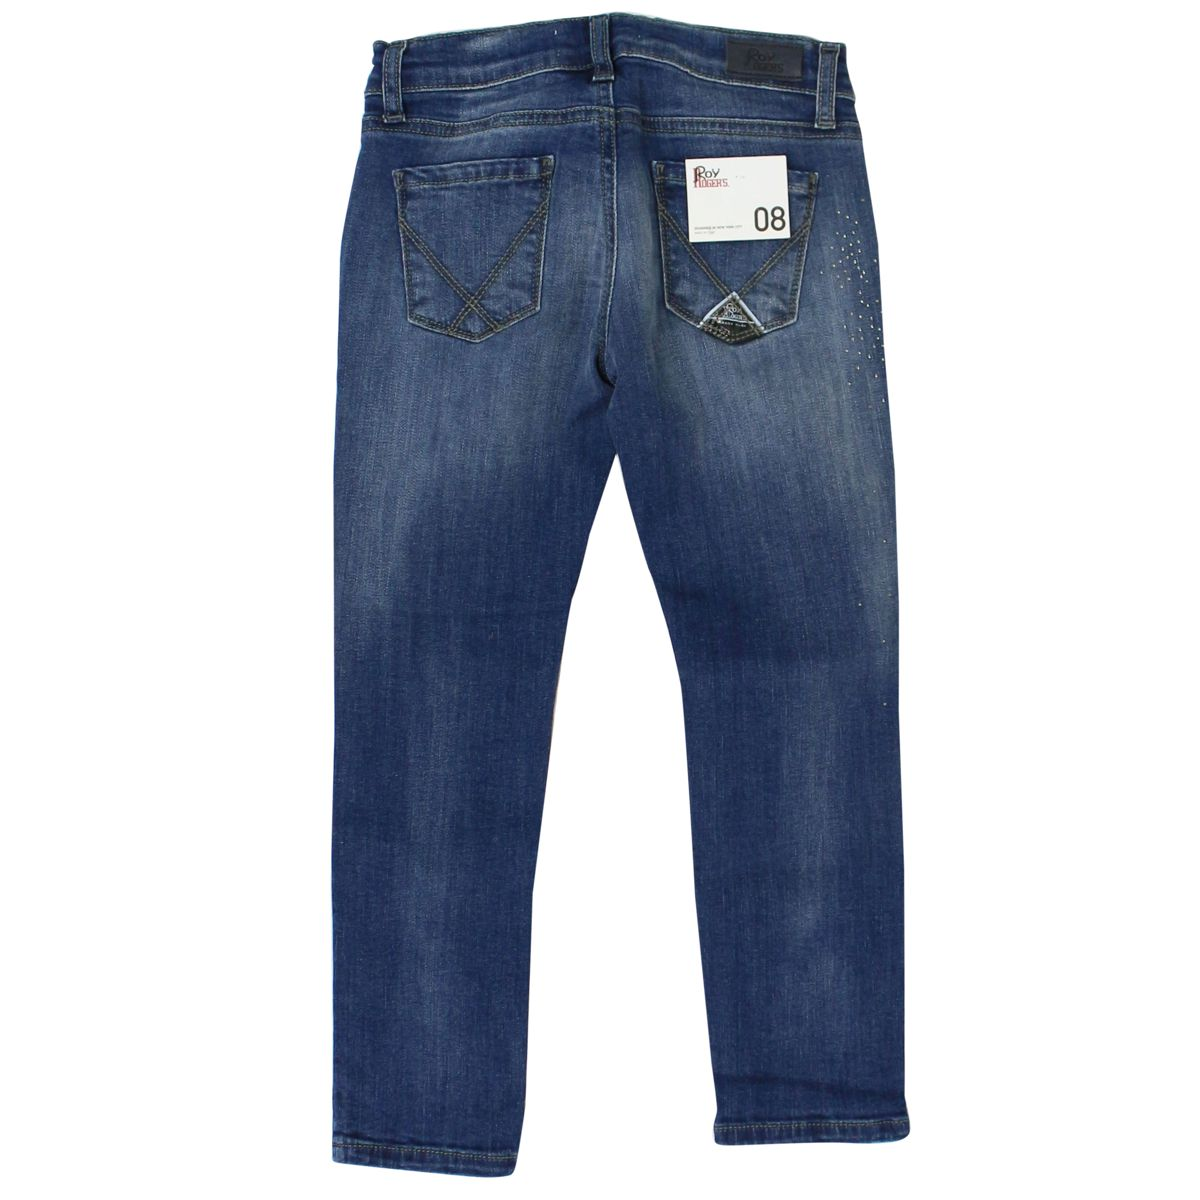 Lionora jeans Dark denim ROY ROGER'S